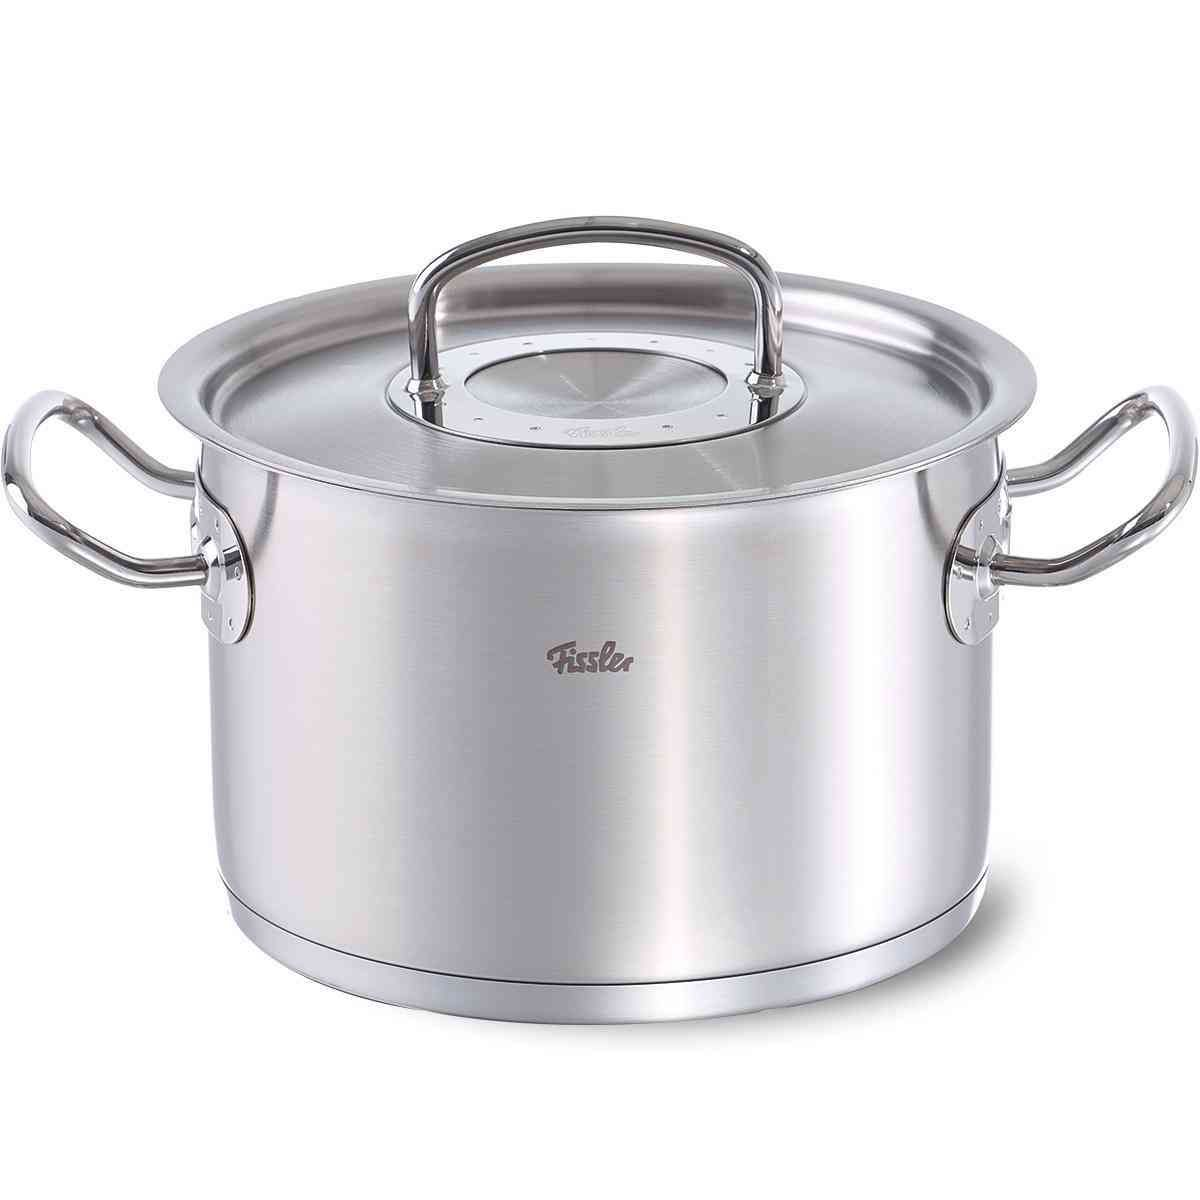 Open Box - original-profi collection® Stock Pot with Lid, 4.2 Quart